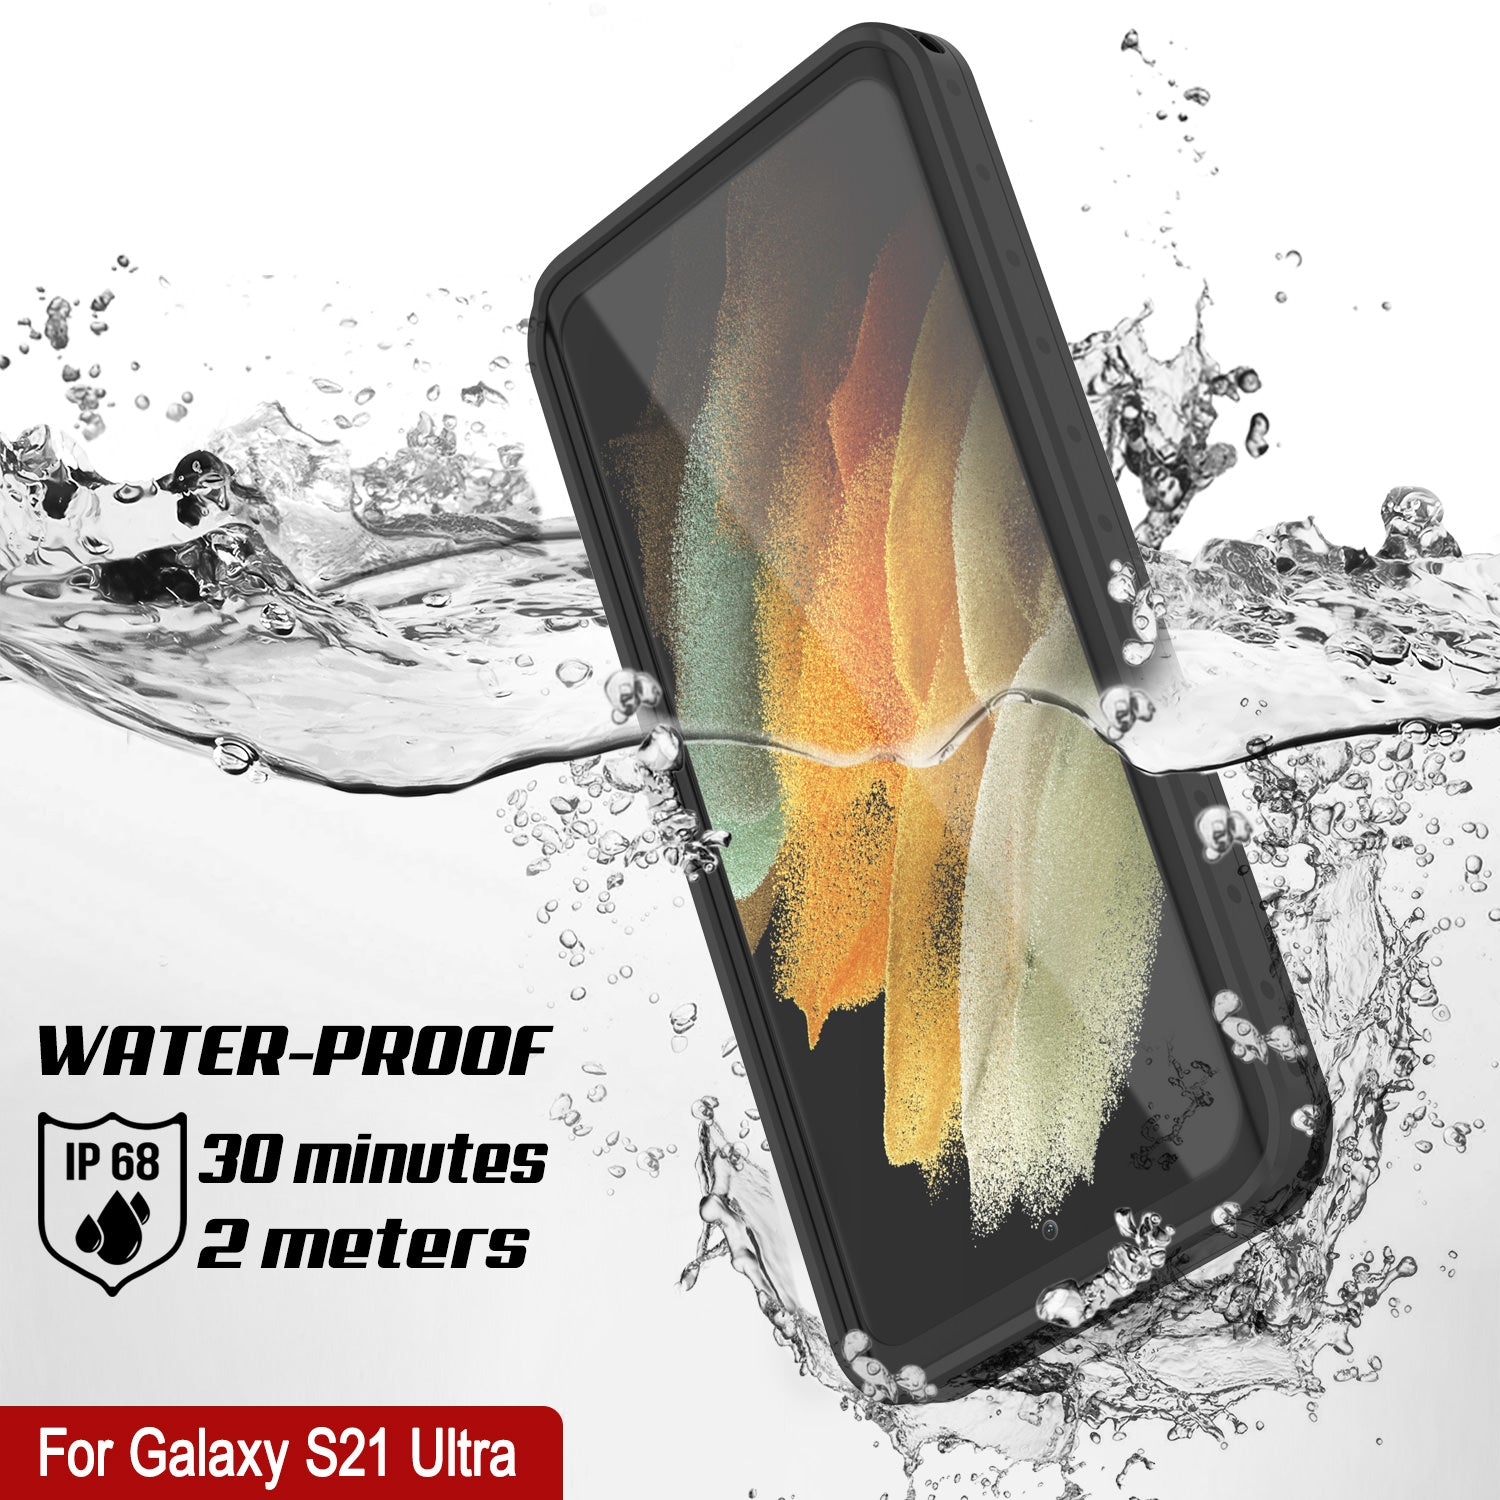 Galaxy S21 Ultra Waterproof Case PunkCase StudStar Black Thin 6.6ft Underwater IP68 Shock/Snow Proof